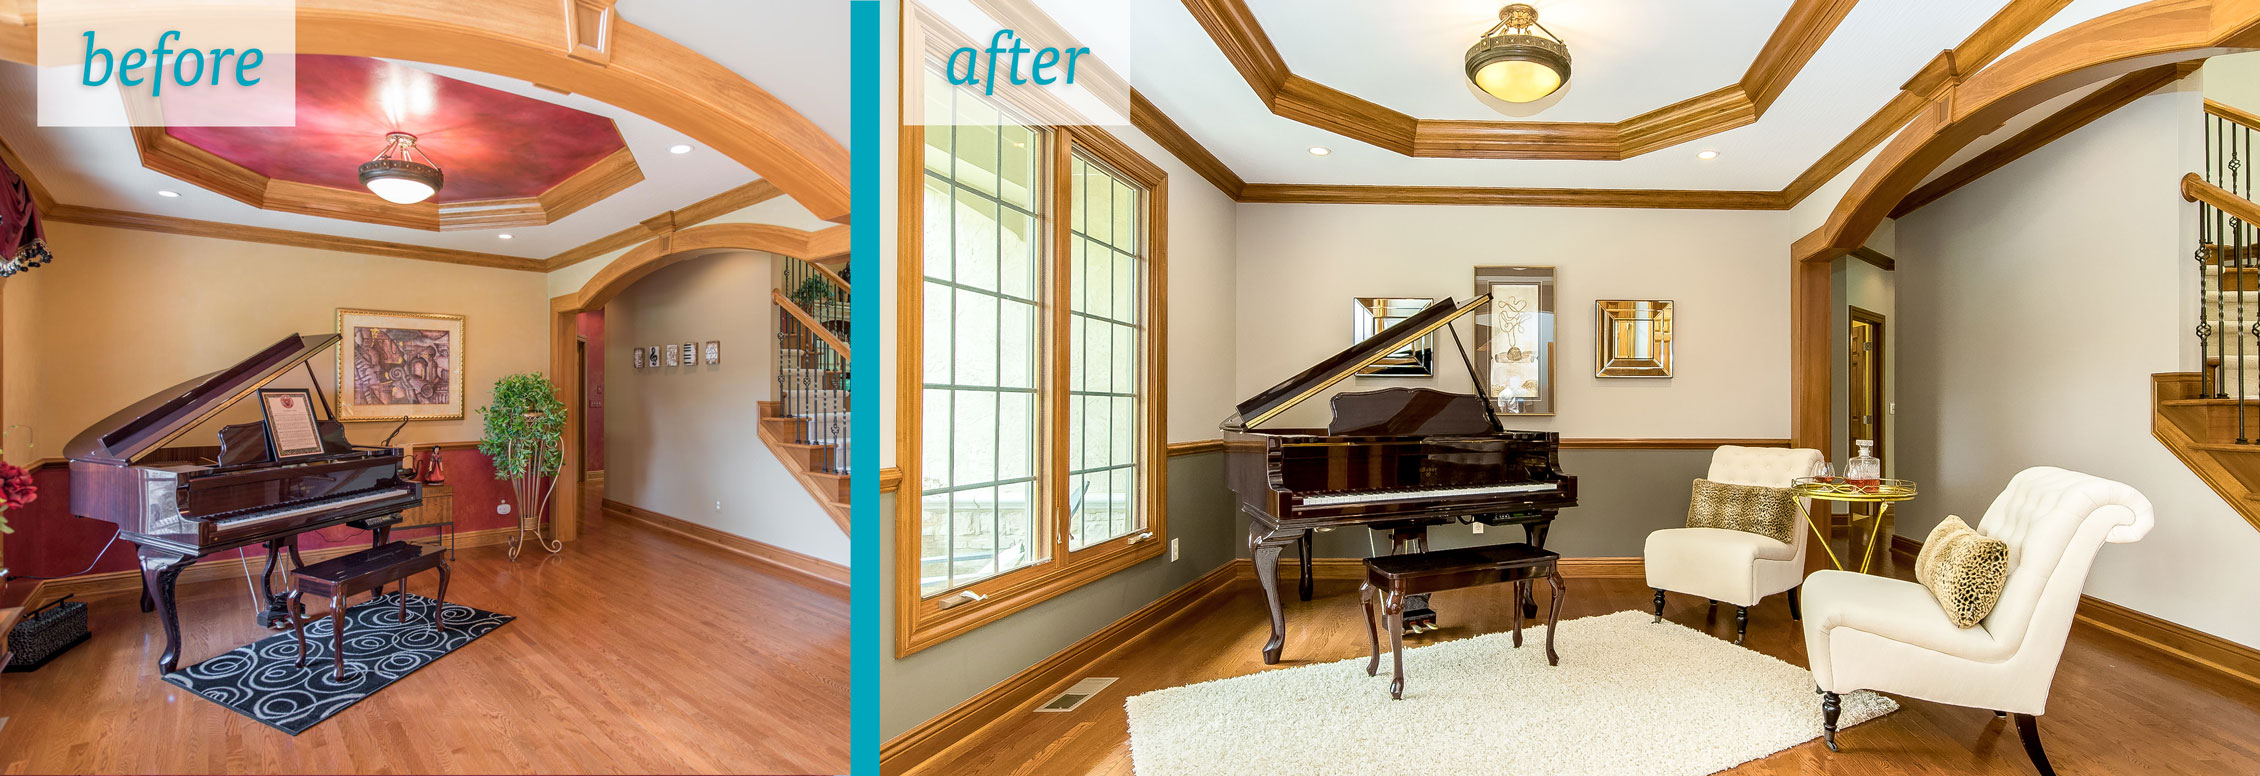 large-before-after-2-piano.jpg